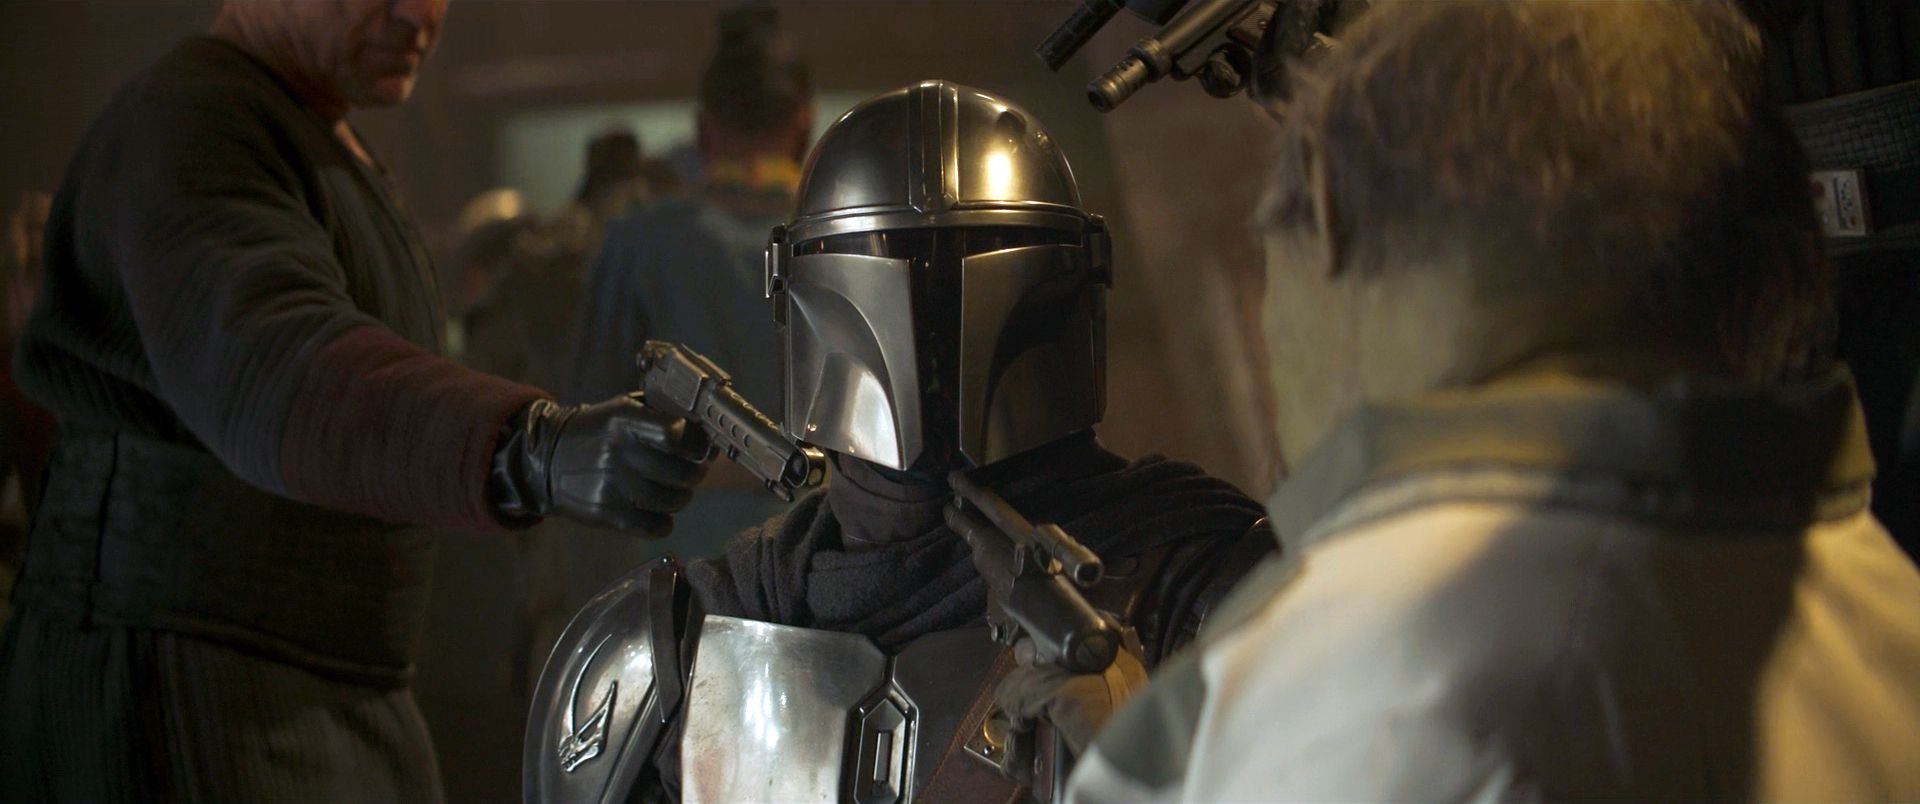 The Mandalorian S2E1 Chapter 9: The Marshal